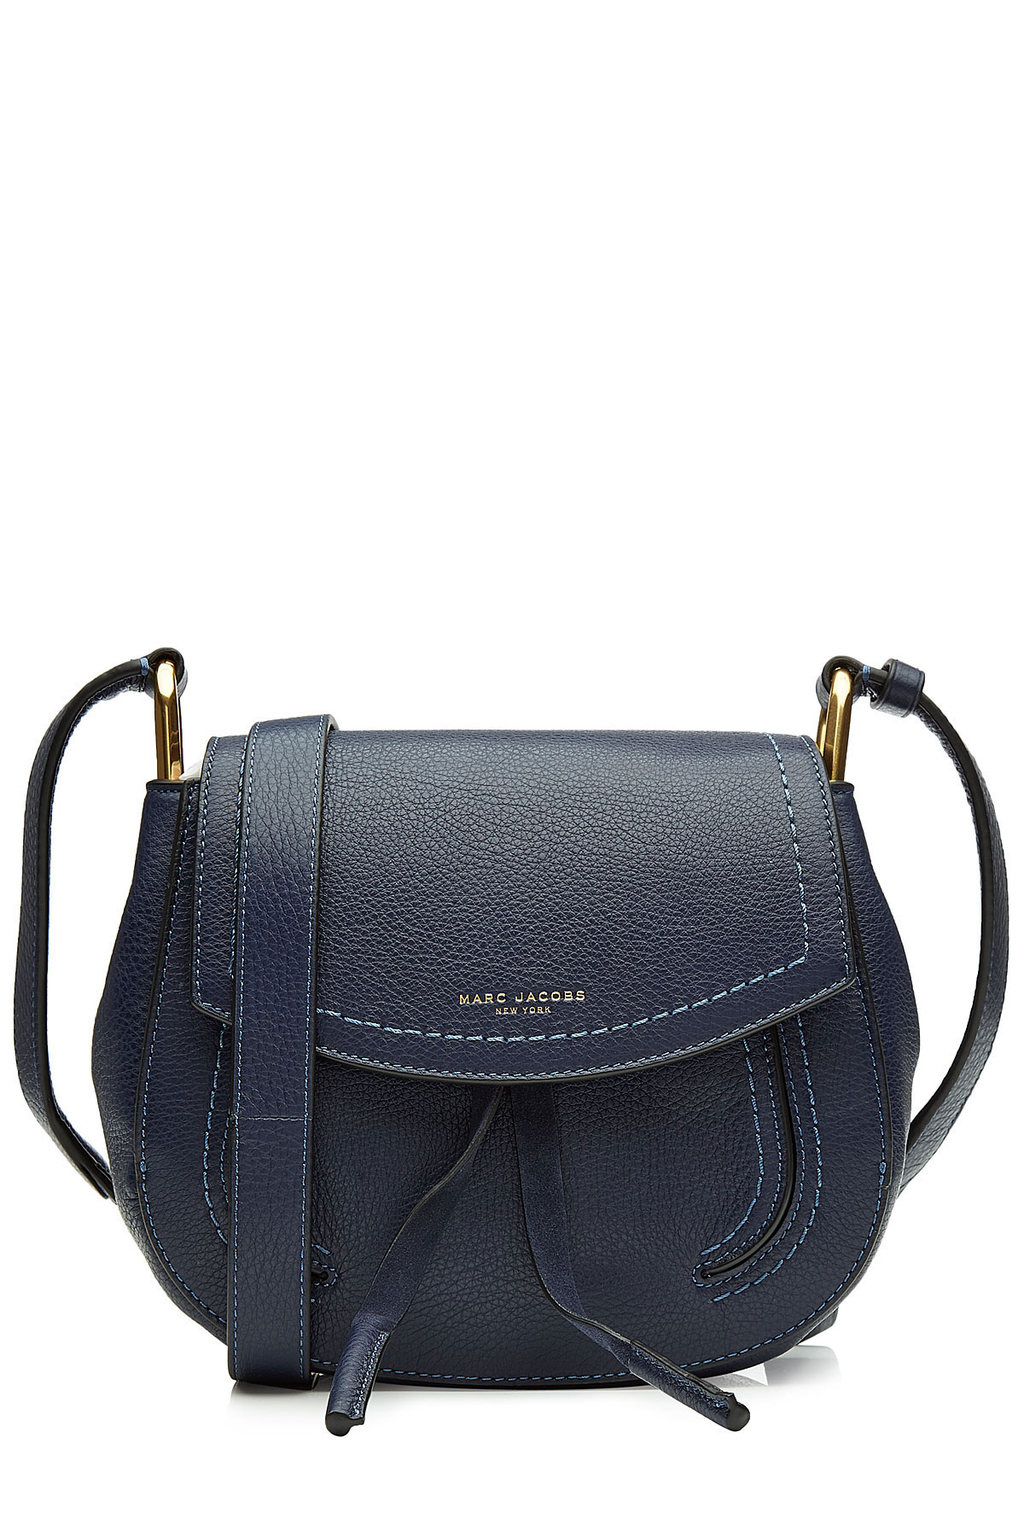 Leather Shoulder Bag Blue - predominant colour: black; occasions: casual; type of pattern: standard; style: messenger; length: across body/long; size: small; material: leather; pattern: plain; finish: plain; wardrobe: basic; season: a/w 2016